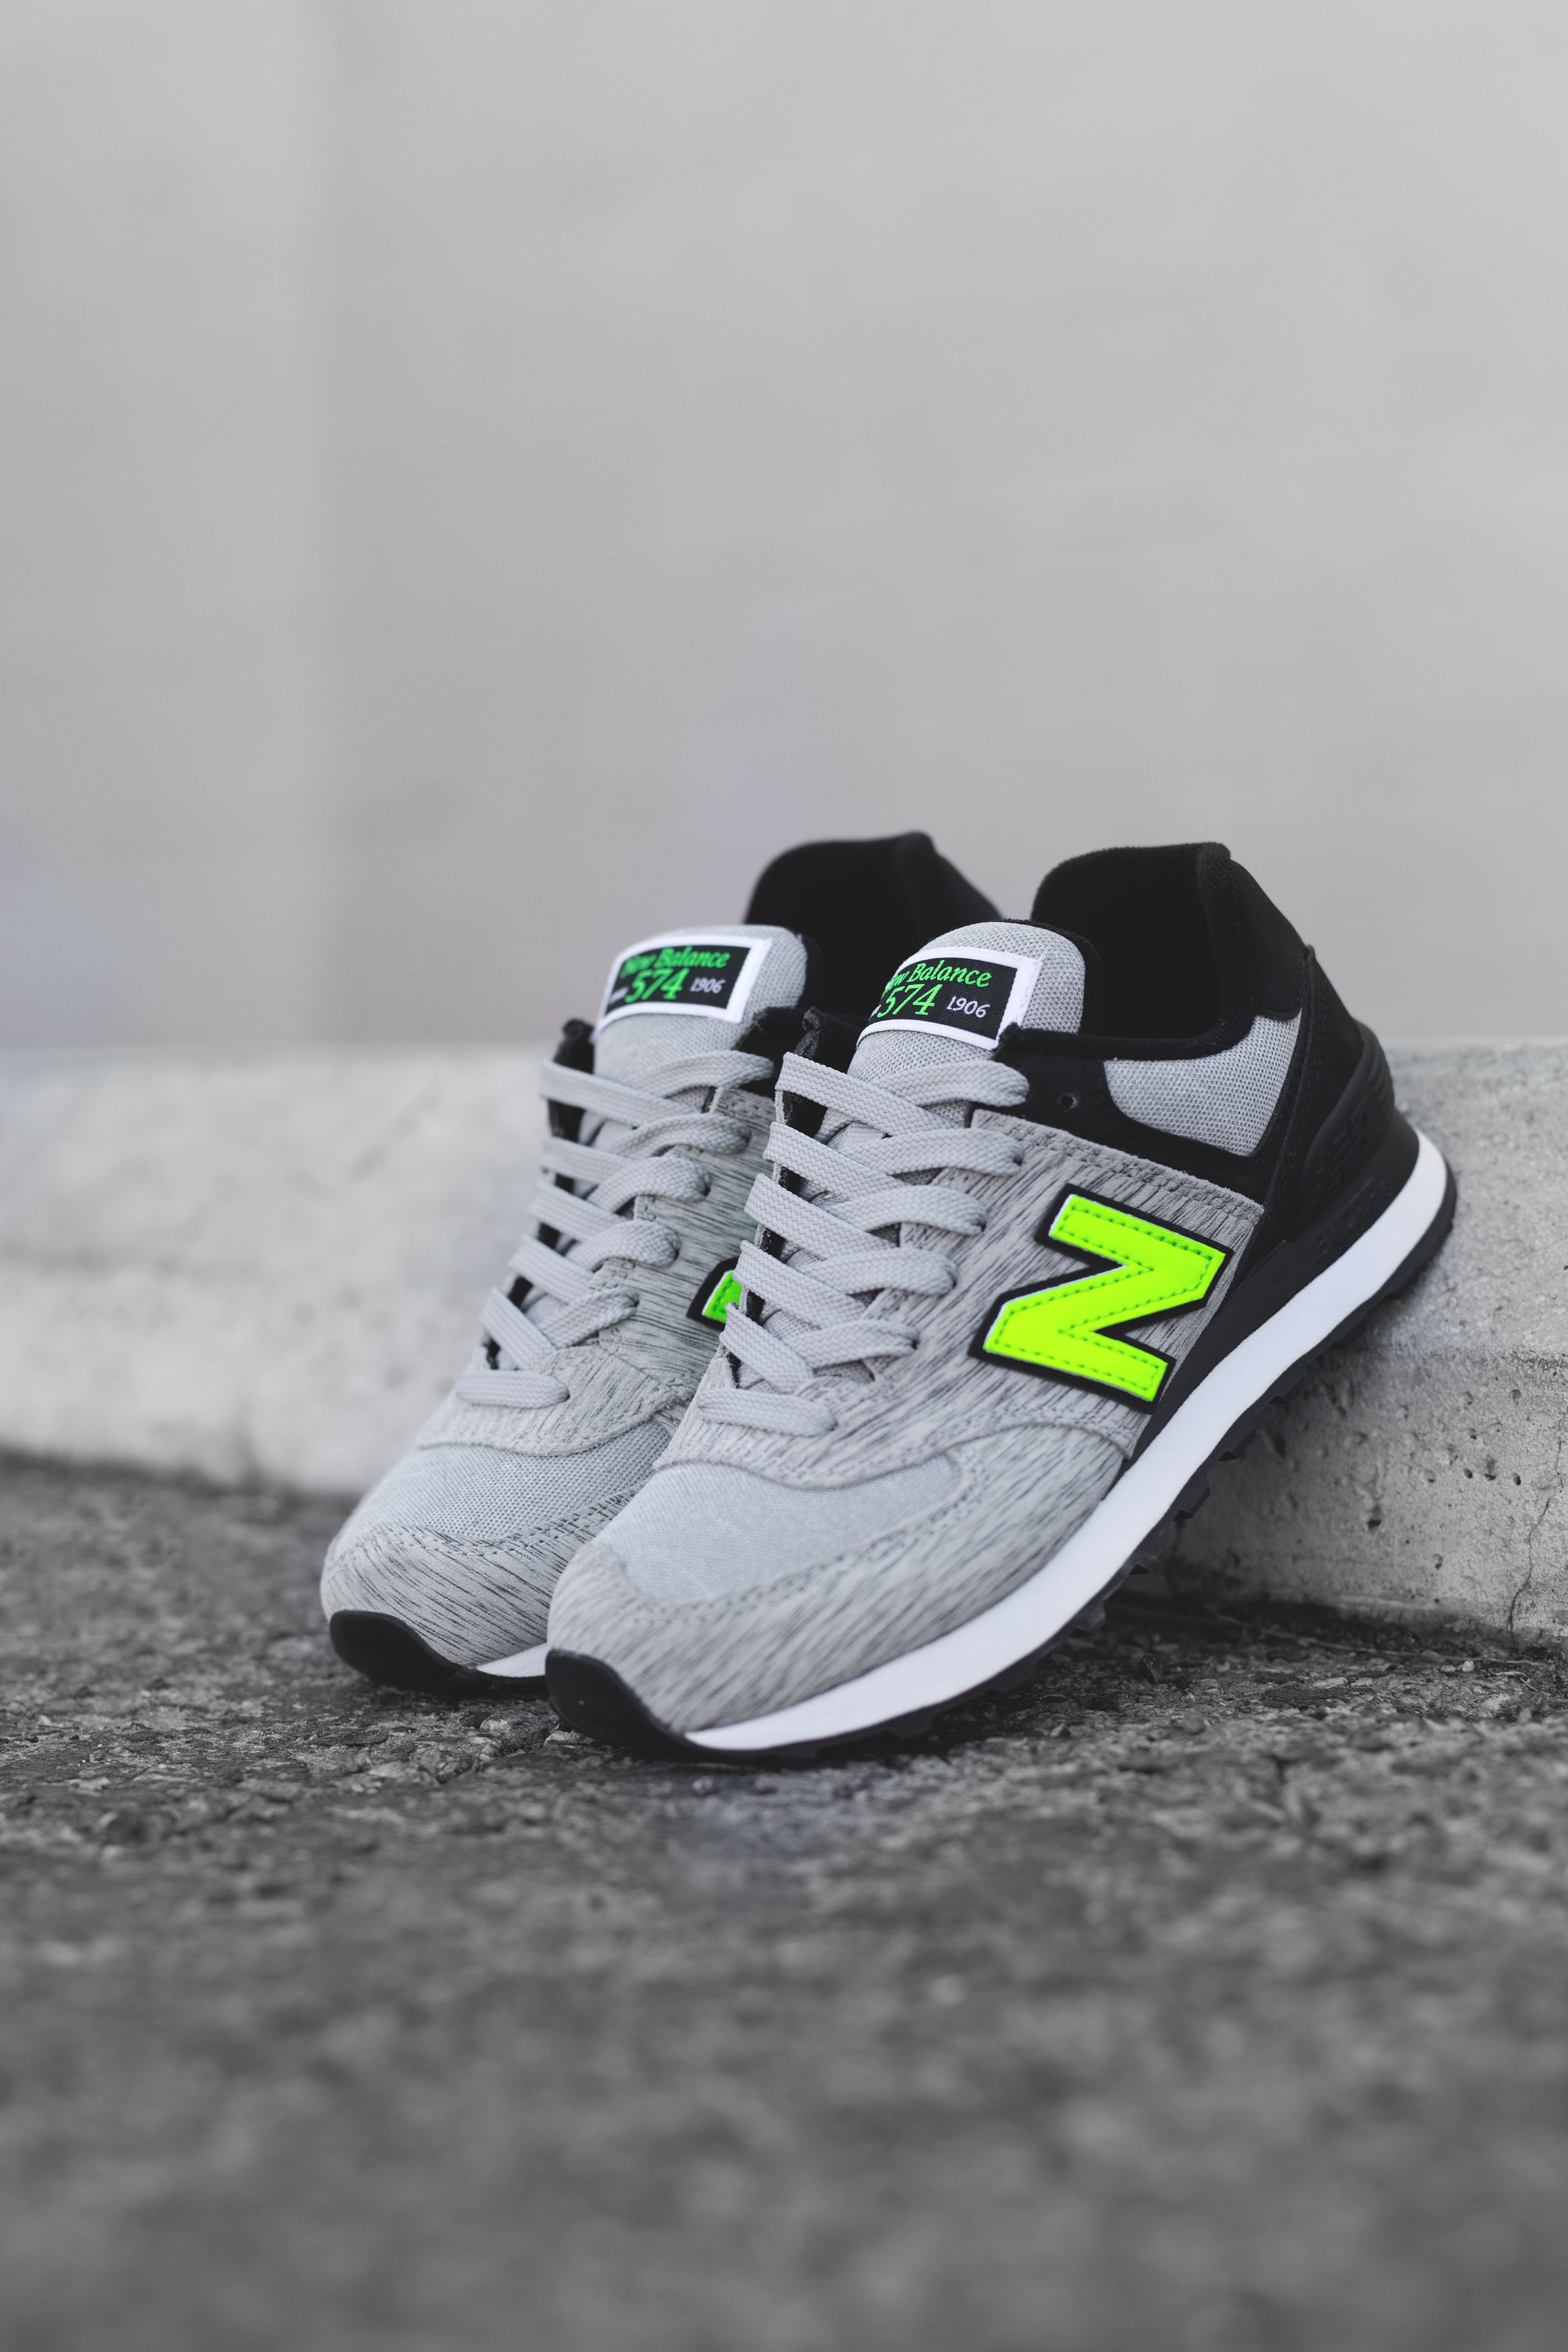 New Balance Women's 574 'Sweatshirt' Pack #NewBalance #NB #574 #Fashion